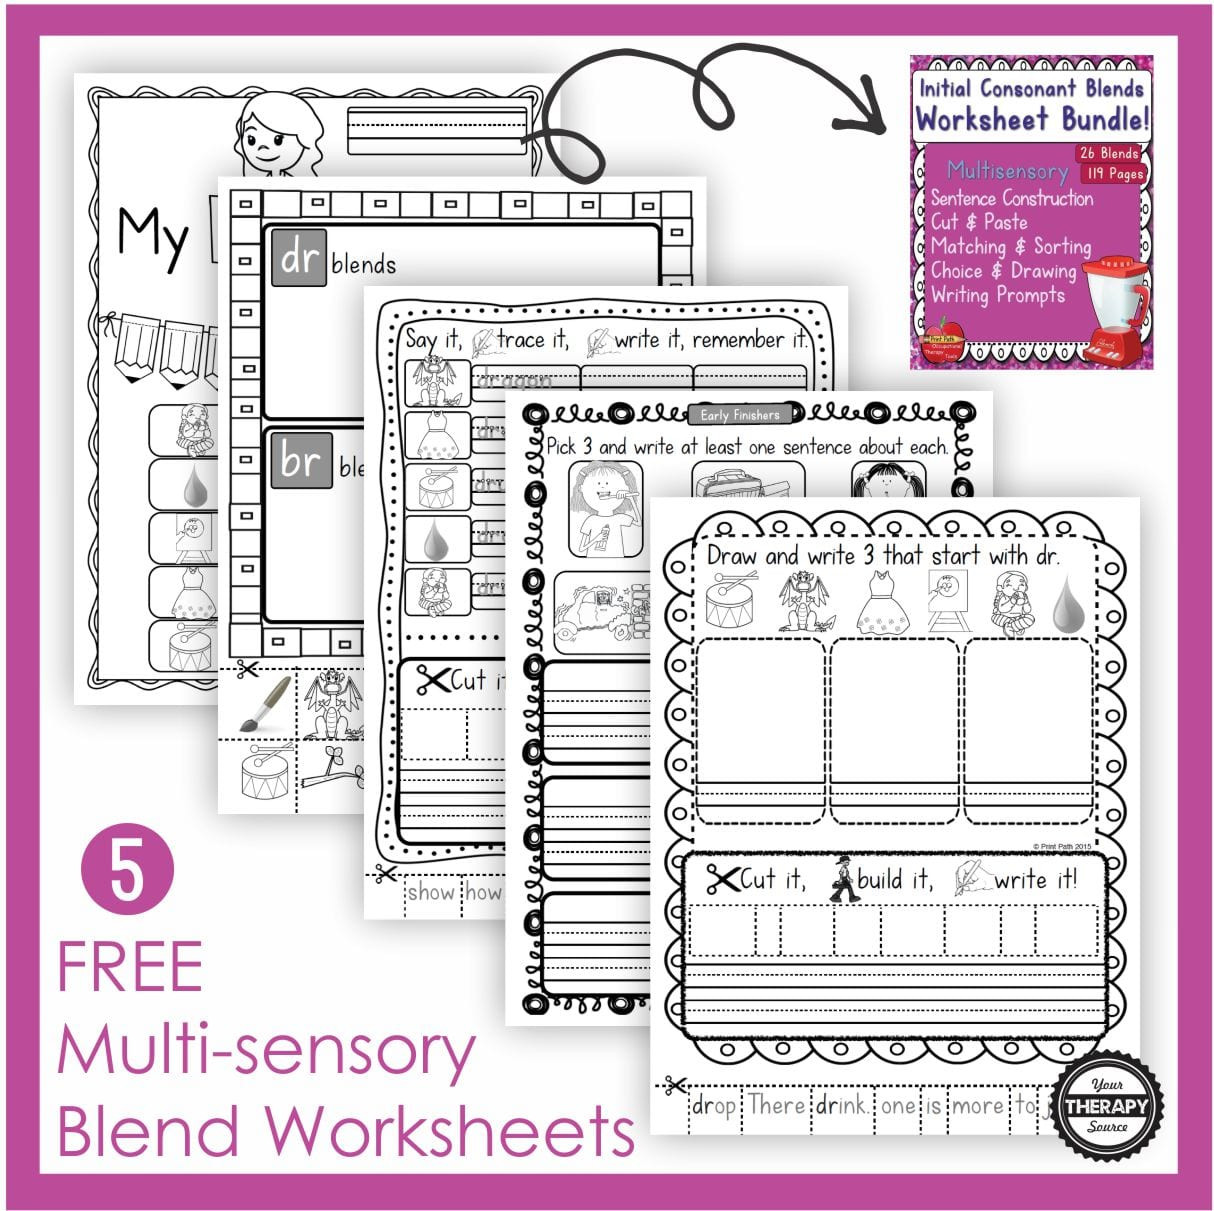 Free Printable Sentence Writing Worksheets Free Blends Worksheets Multisensory Learning Your